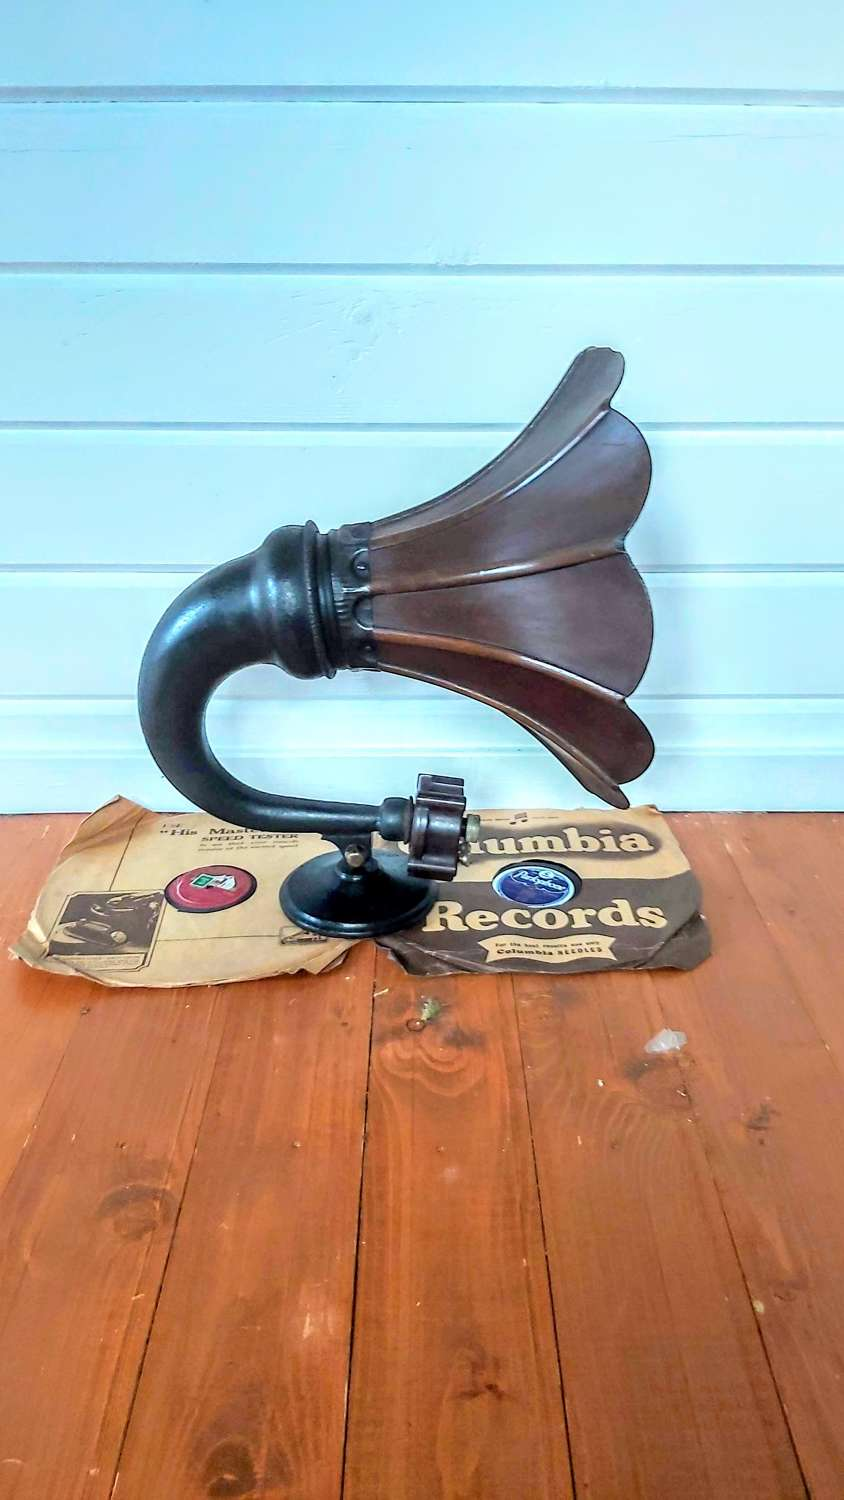 1925 Amplion wooden horn speaker